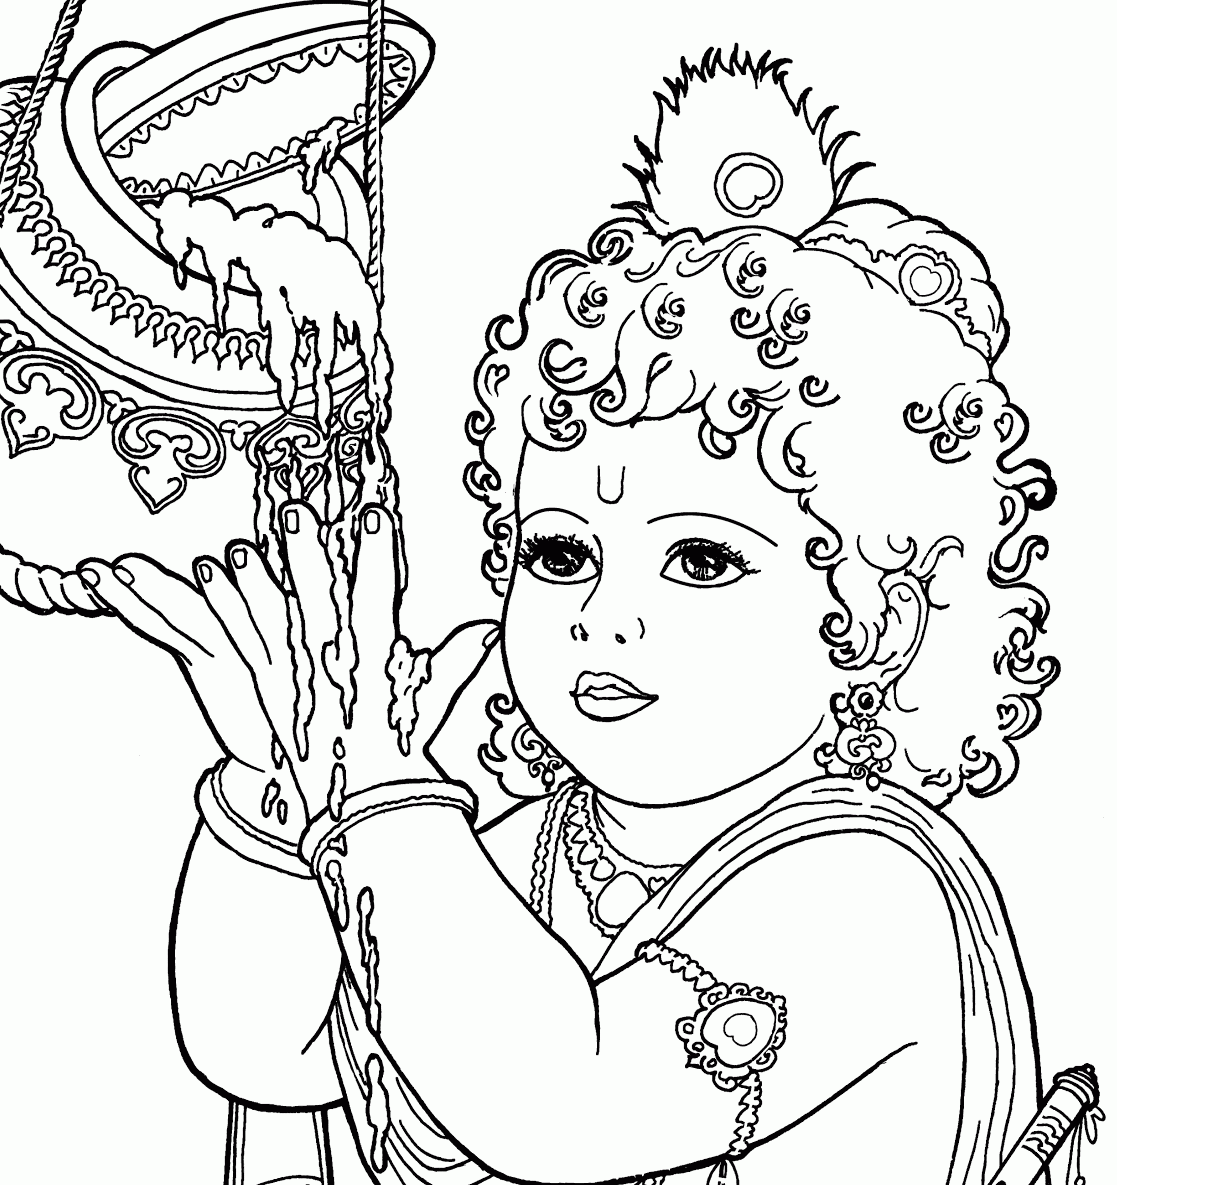 Krishna drawing at free for personal use for Coloring pages of krishna